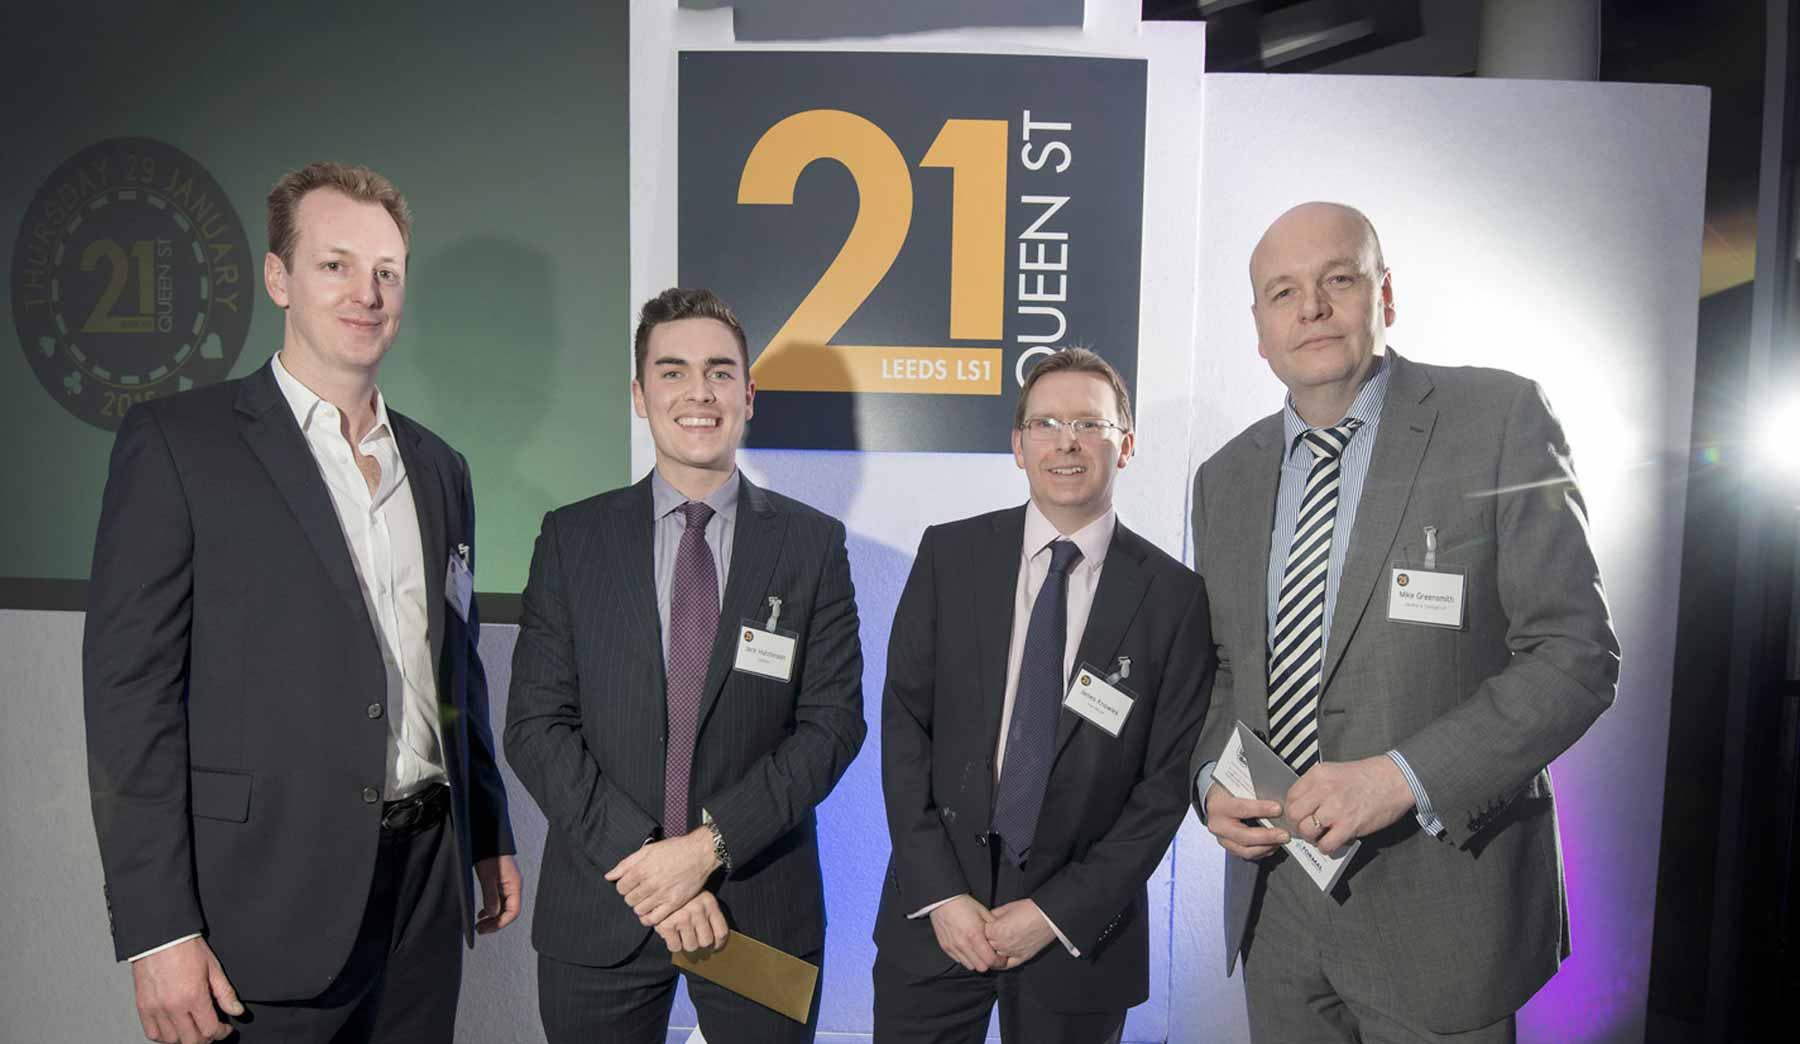 Four men stood in front of a 21 Queen Street logo